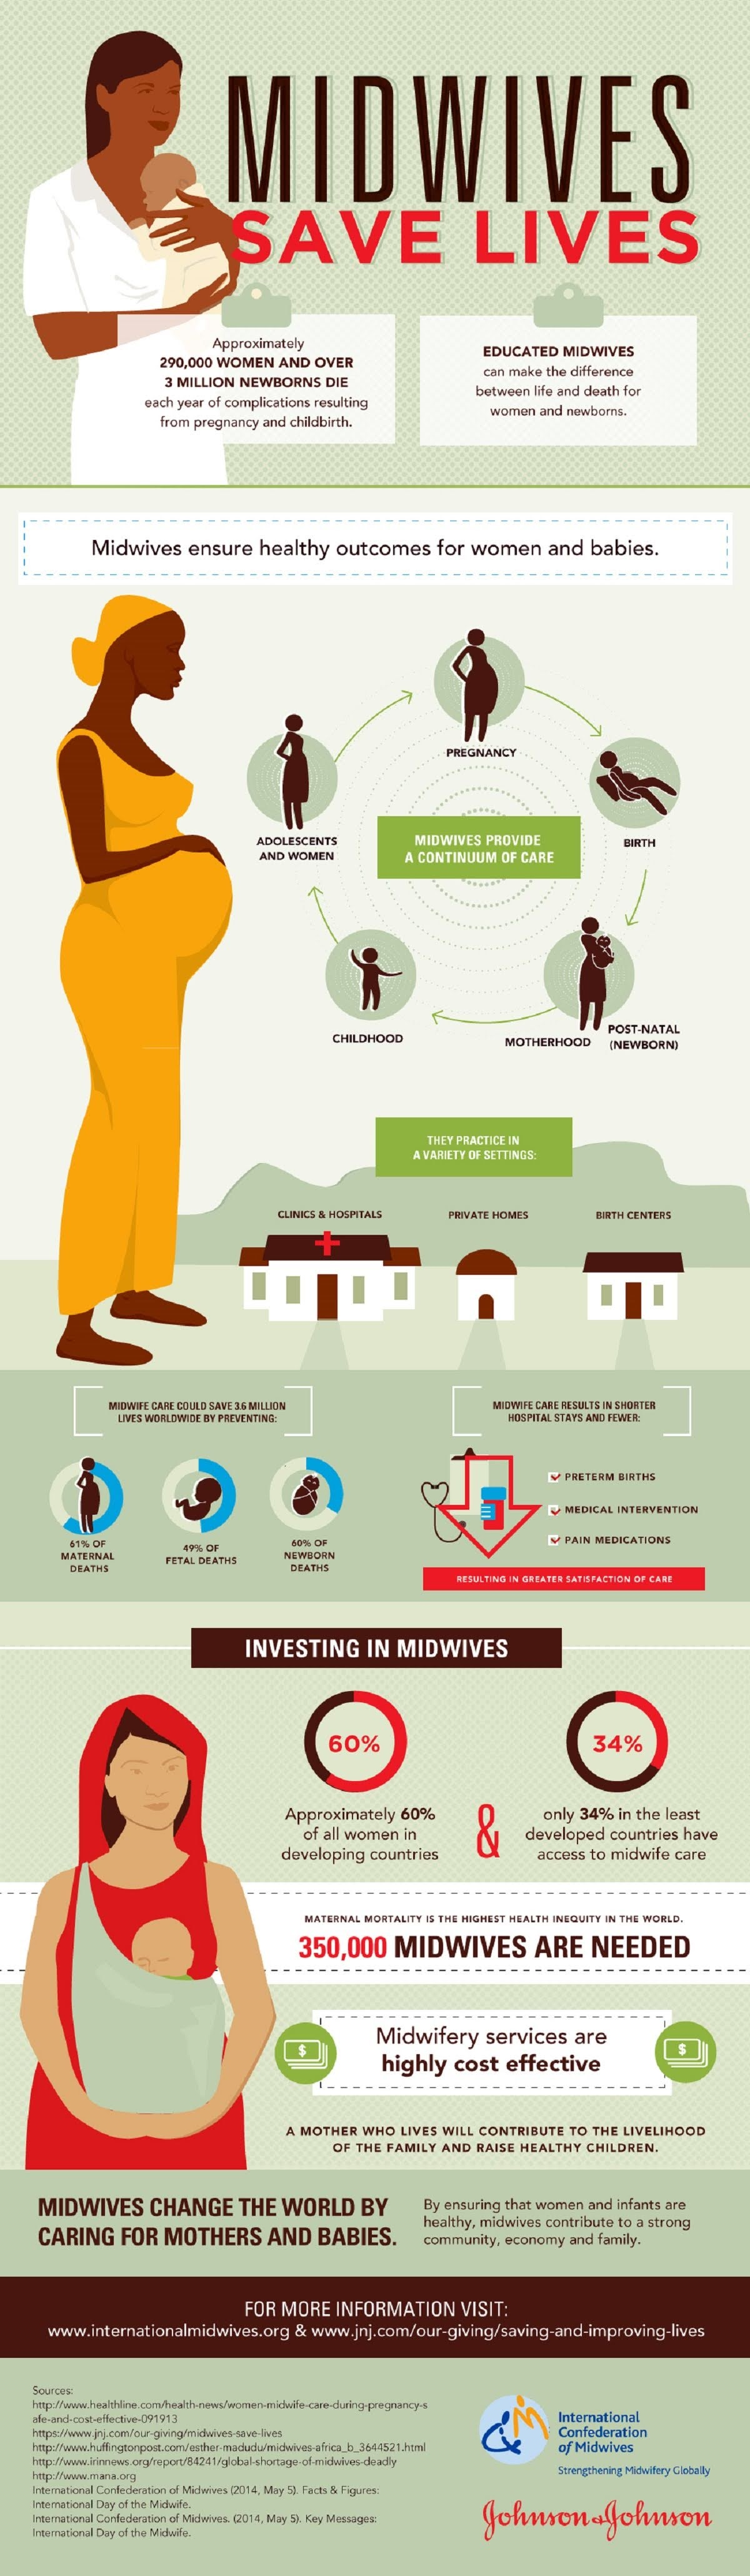 midwives-save-lives-infographic